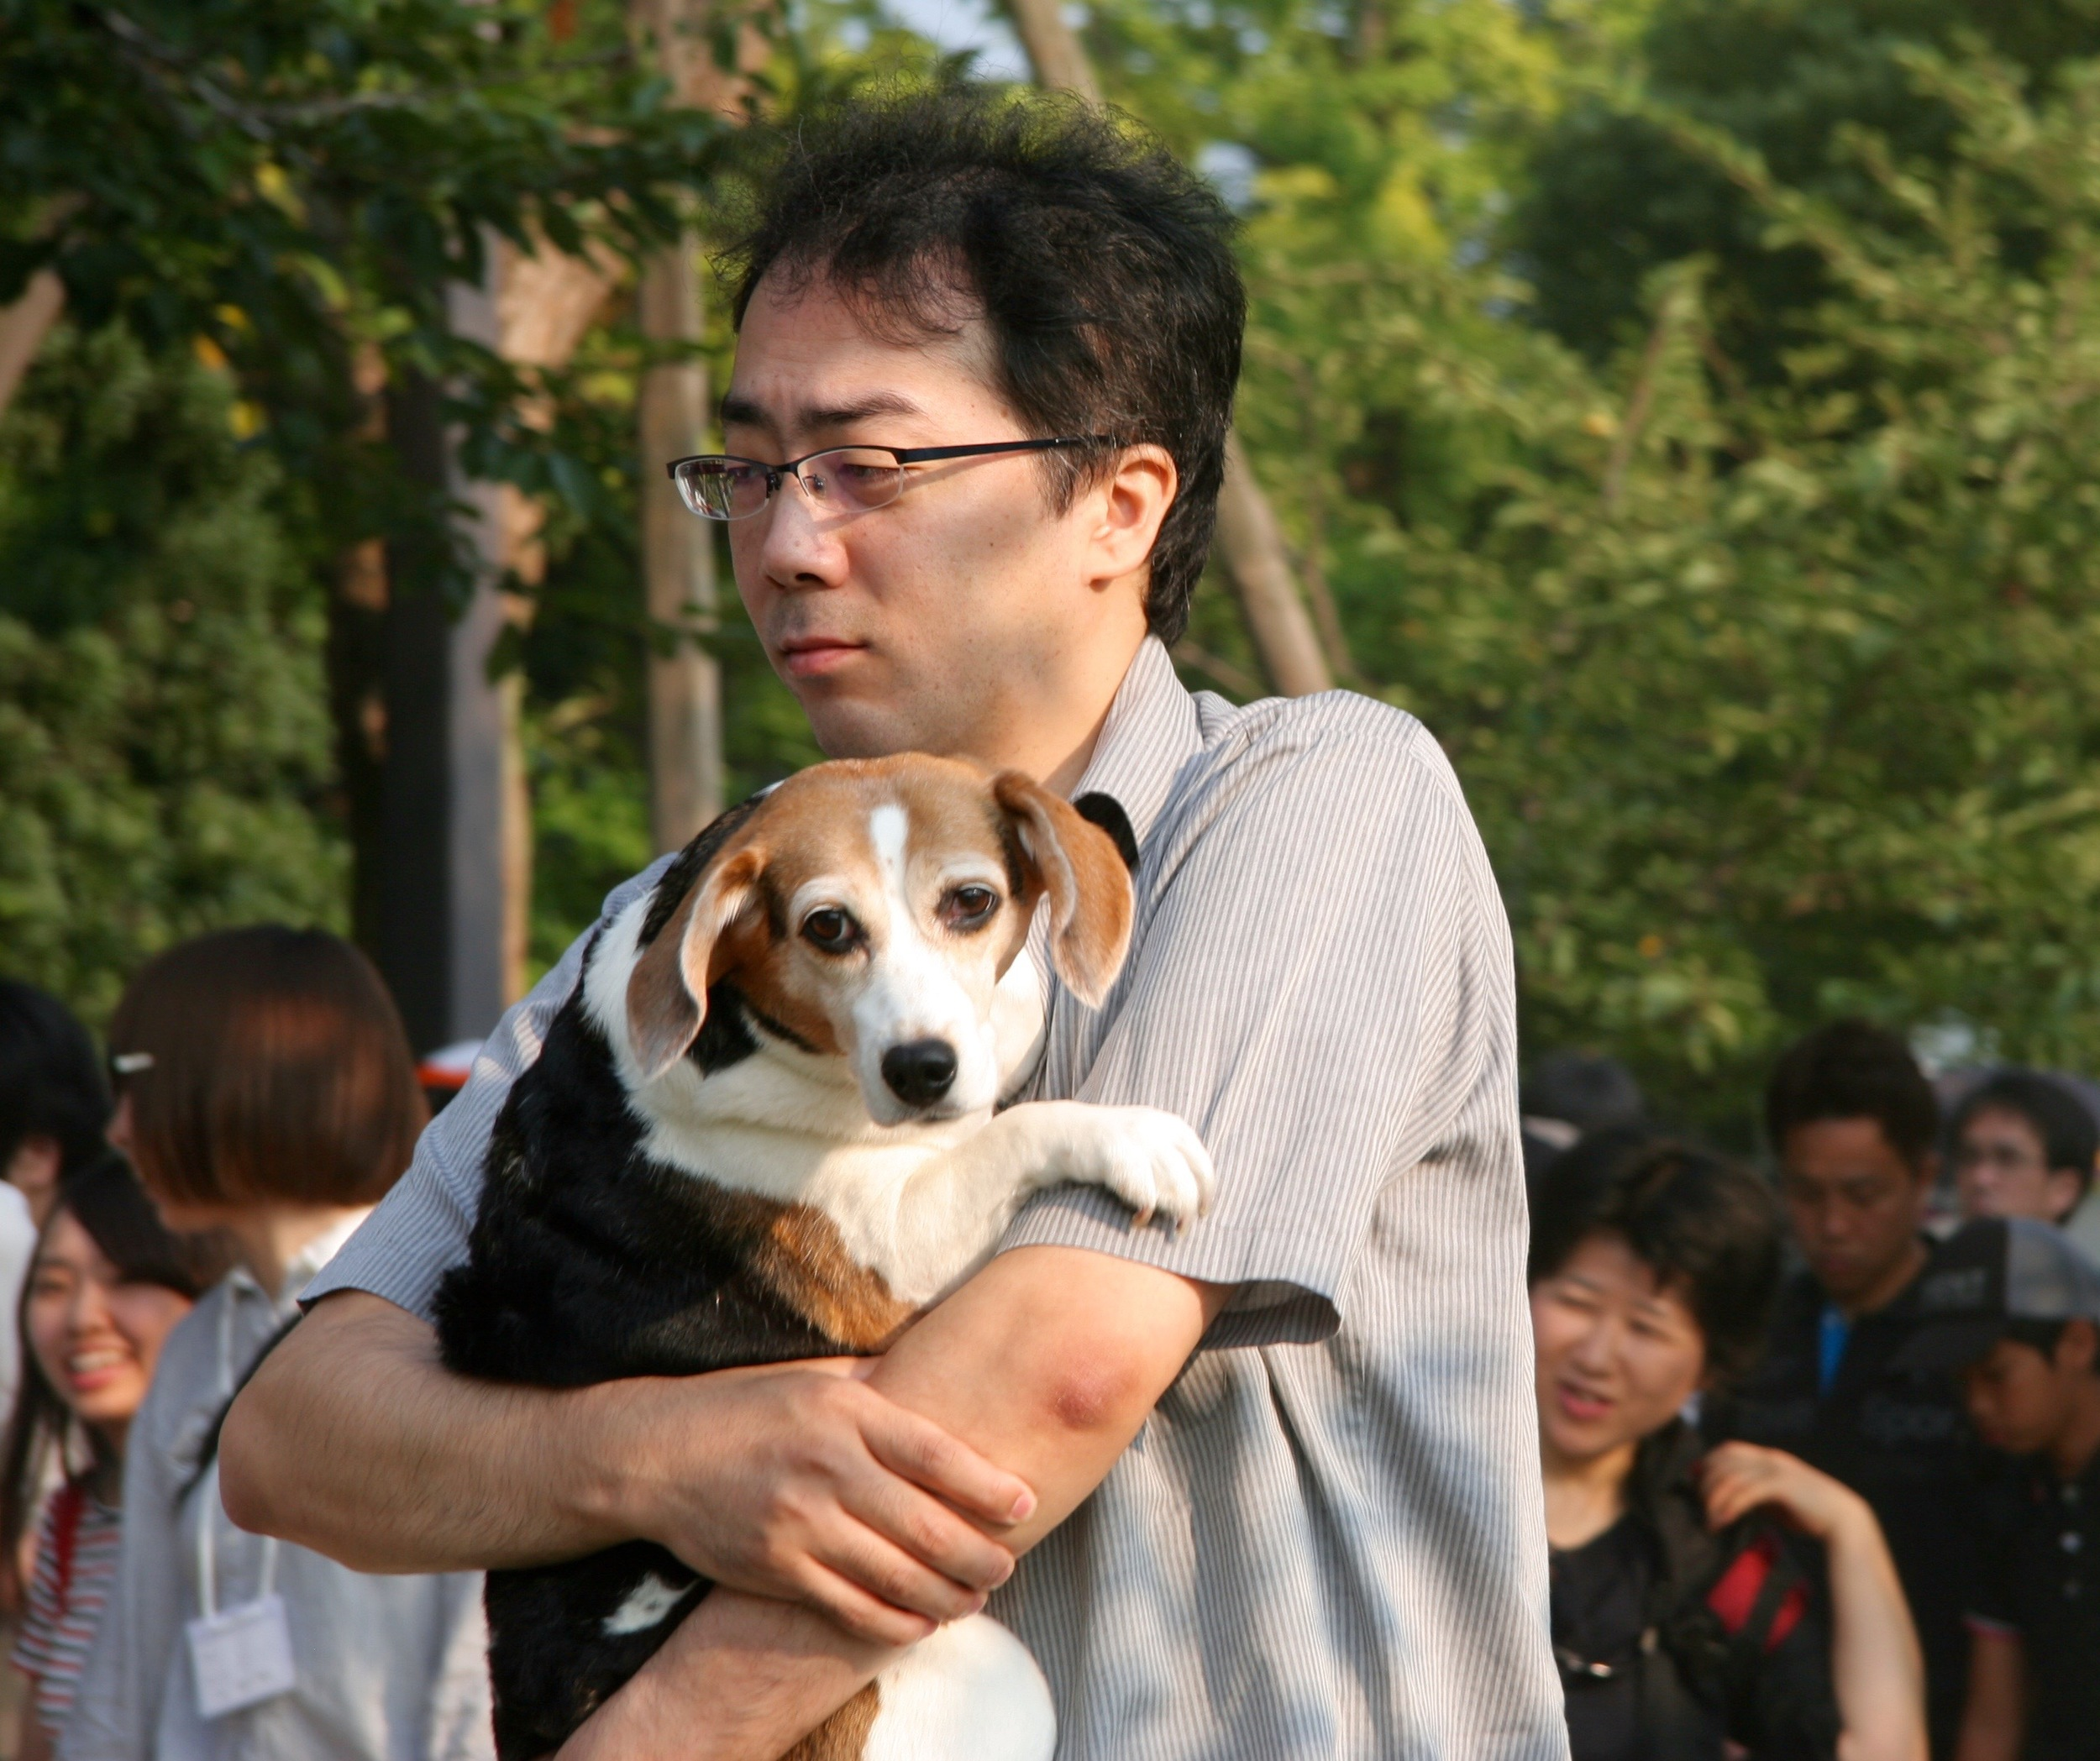 A man totes his obese beagle around the park grounds, the only dog I saw all day. True love